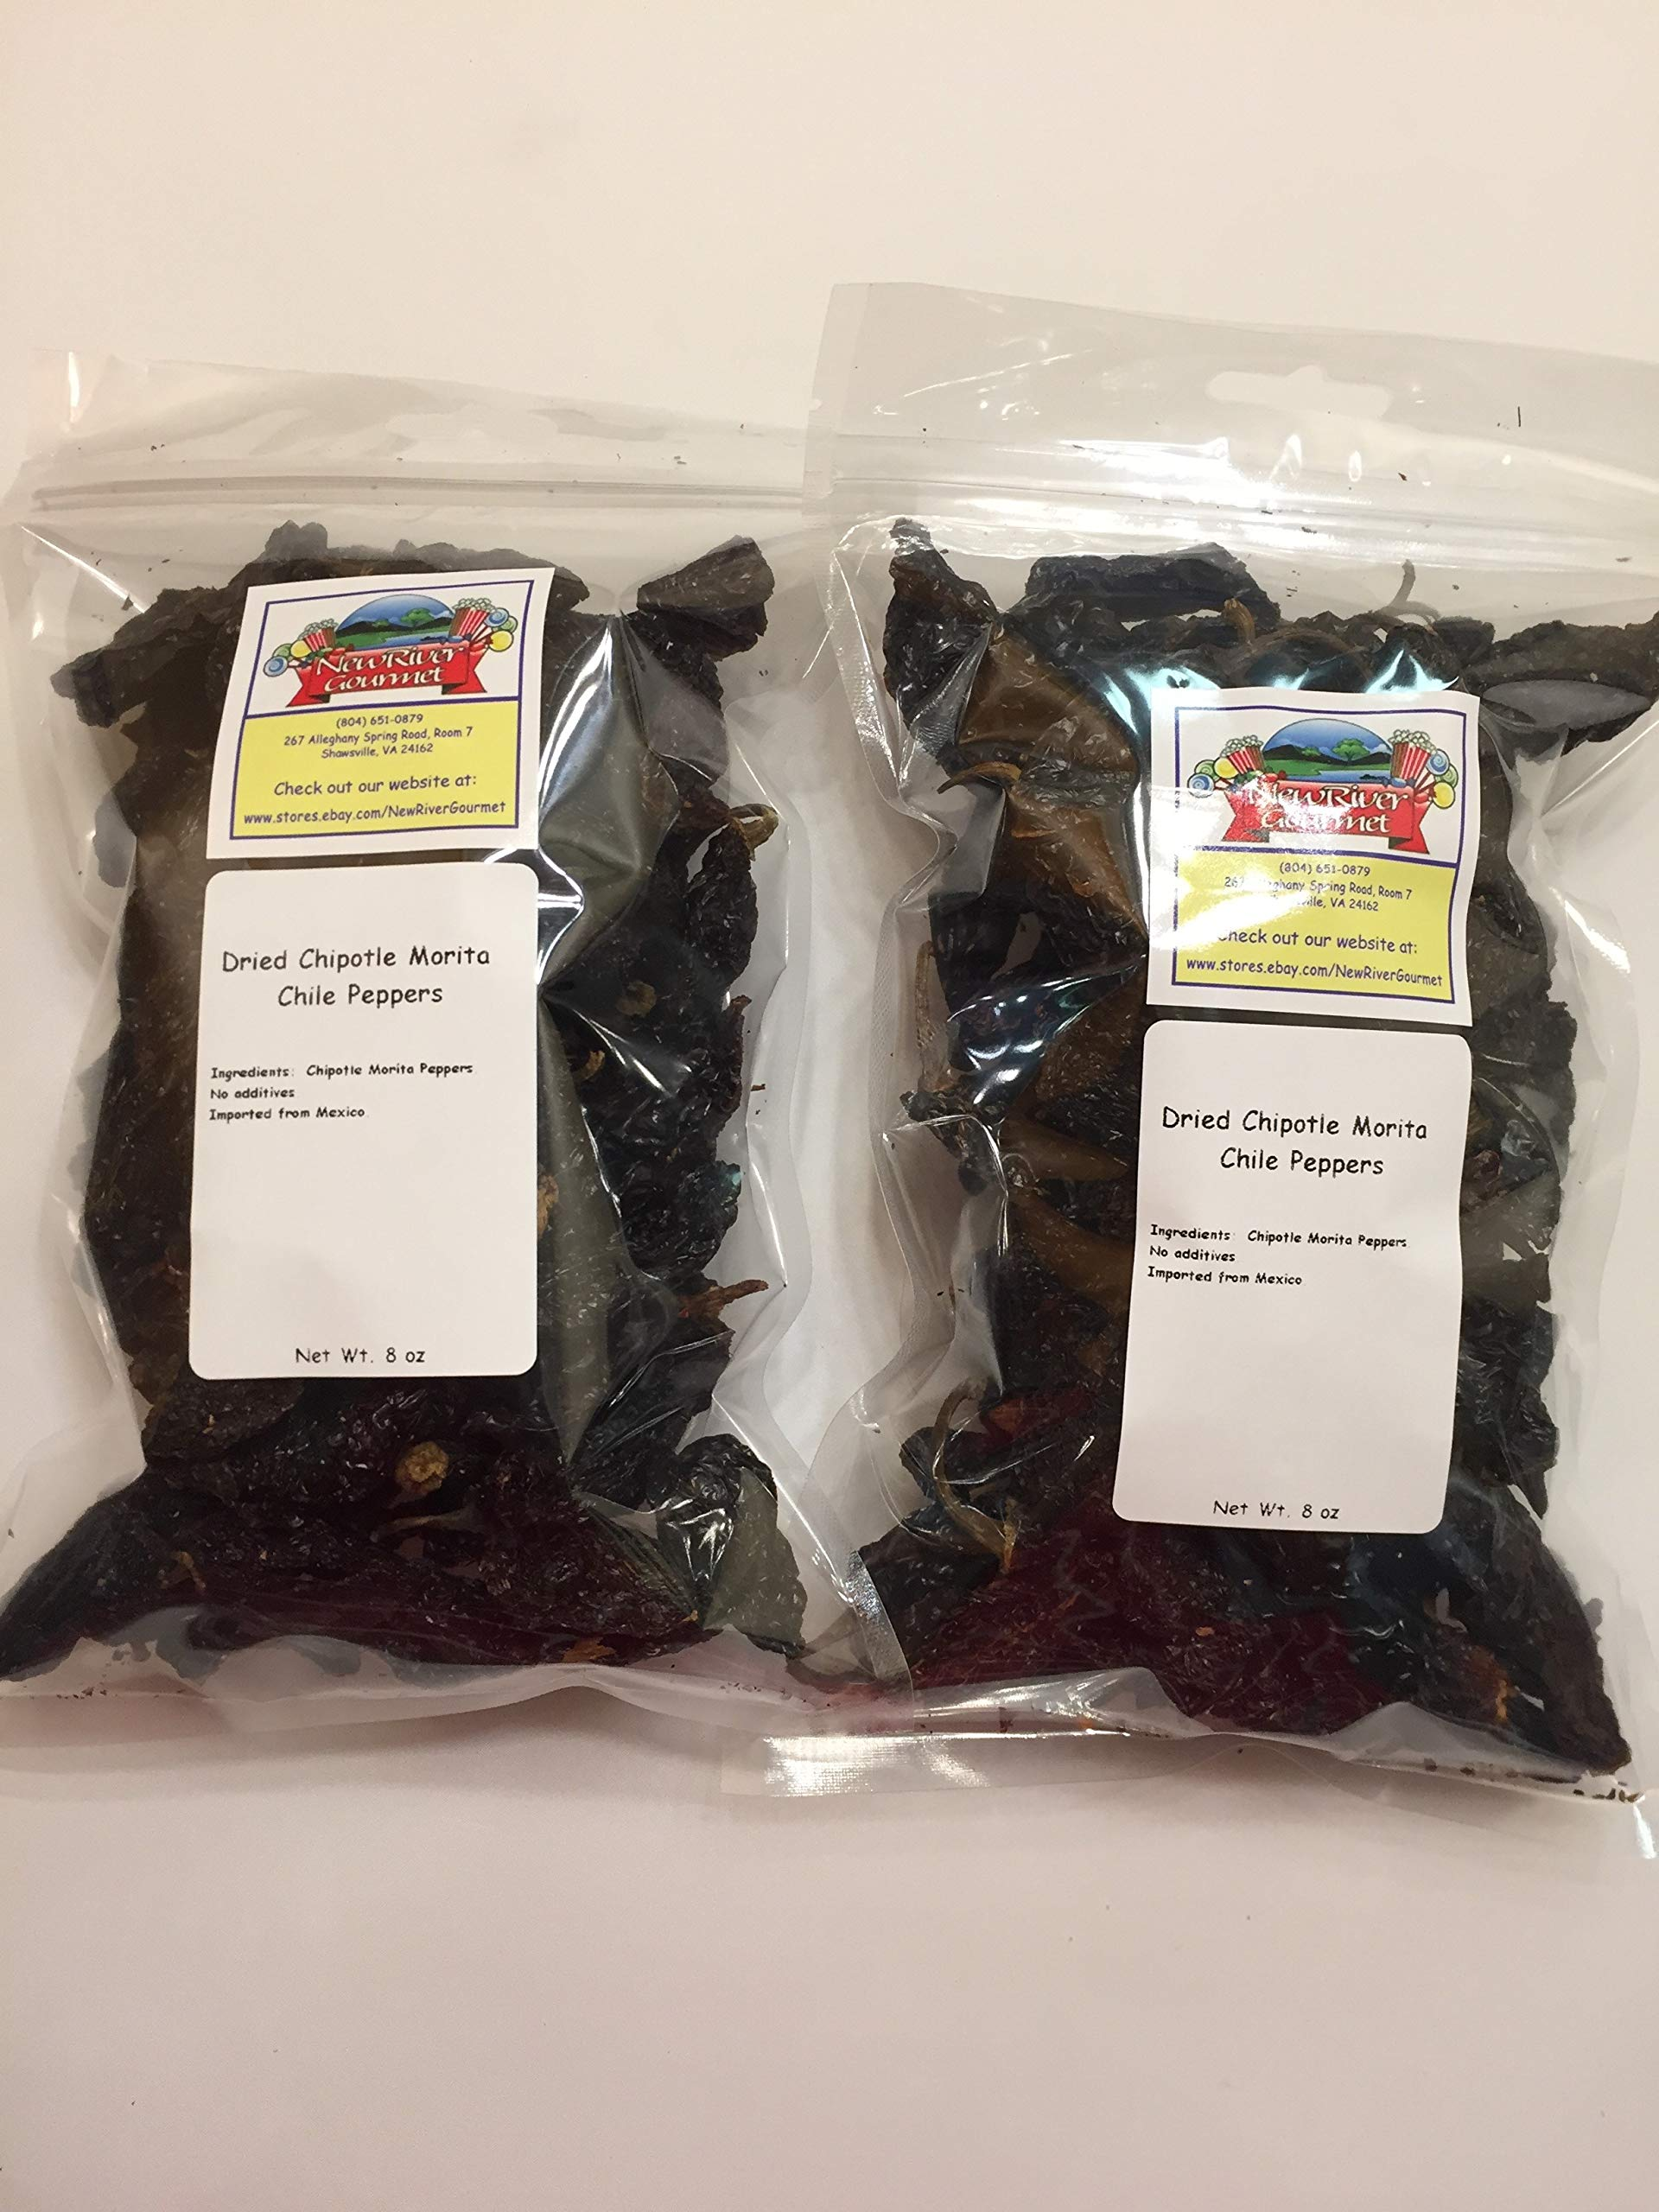 Whole Chipotle Morita Chiles From Mexico (8 ounces (Pack of 2))